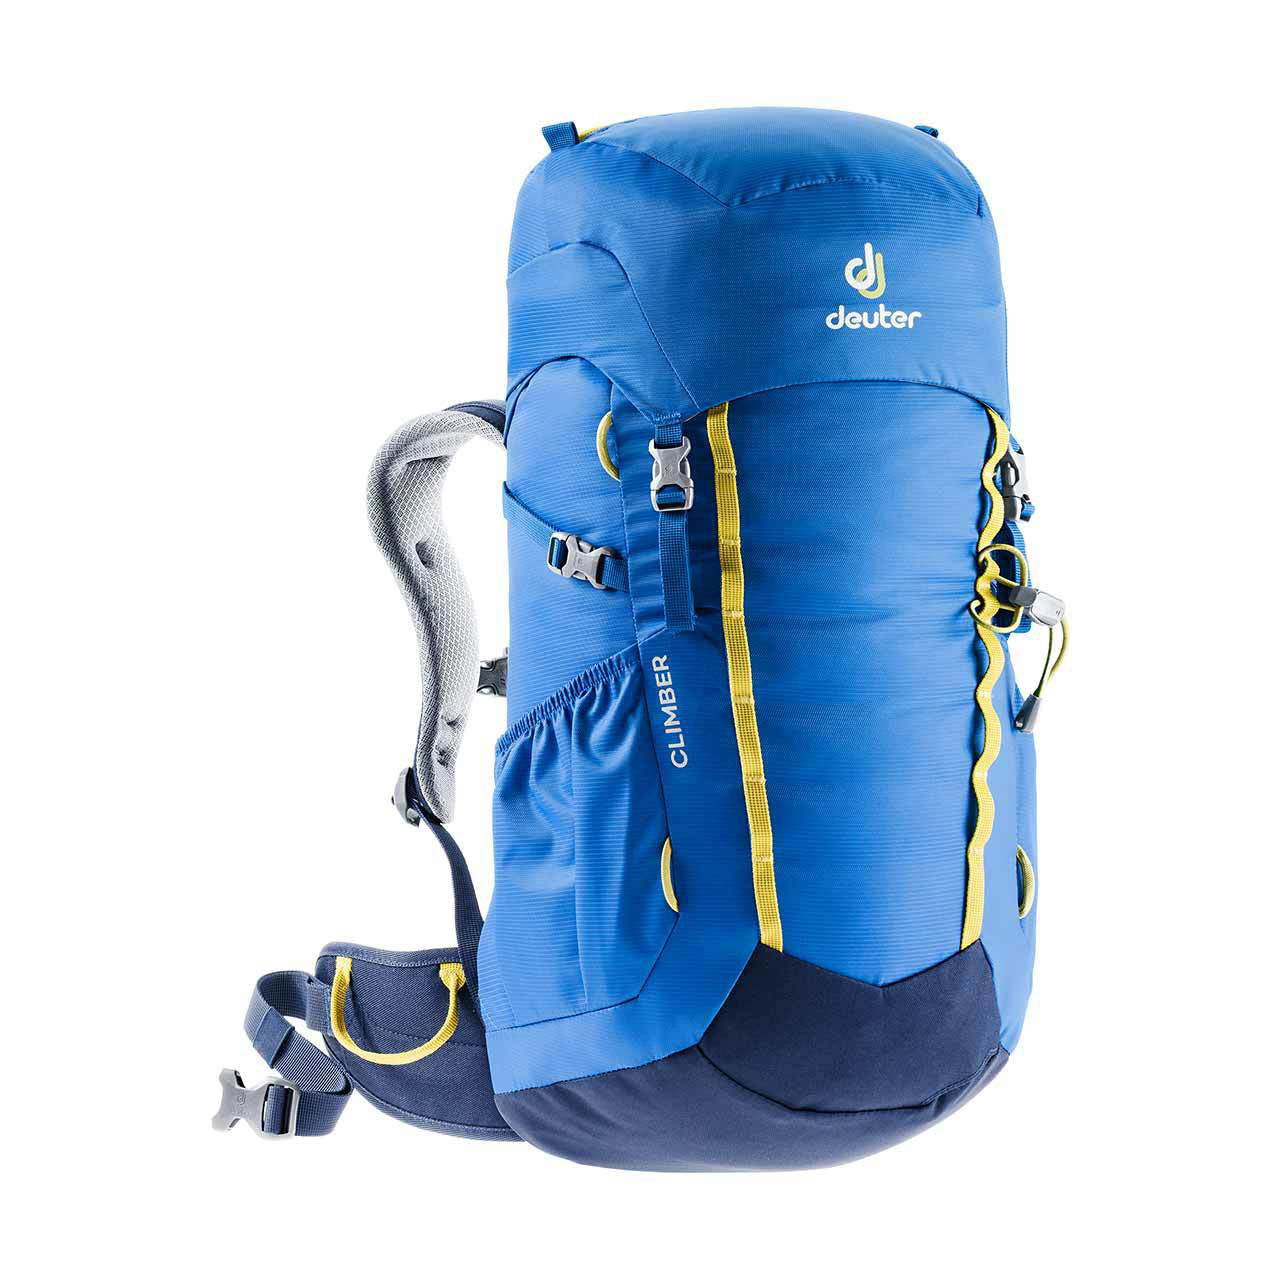 Deuter Climber Back Pack